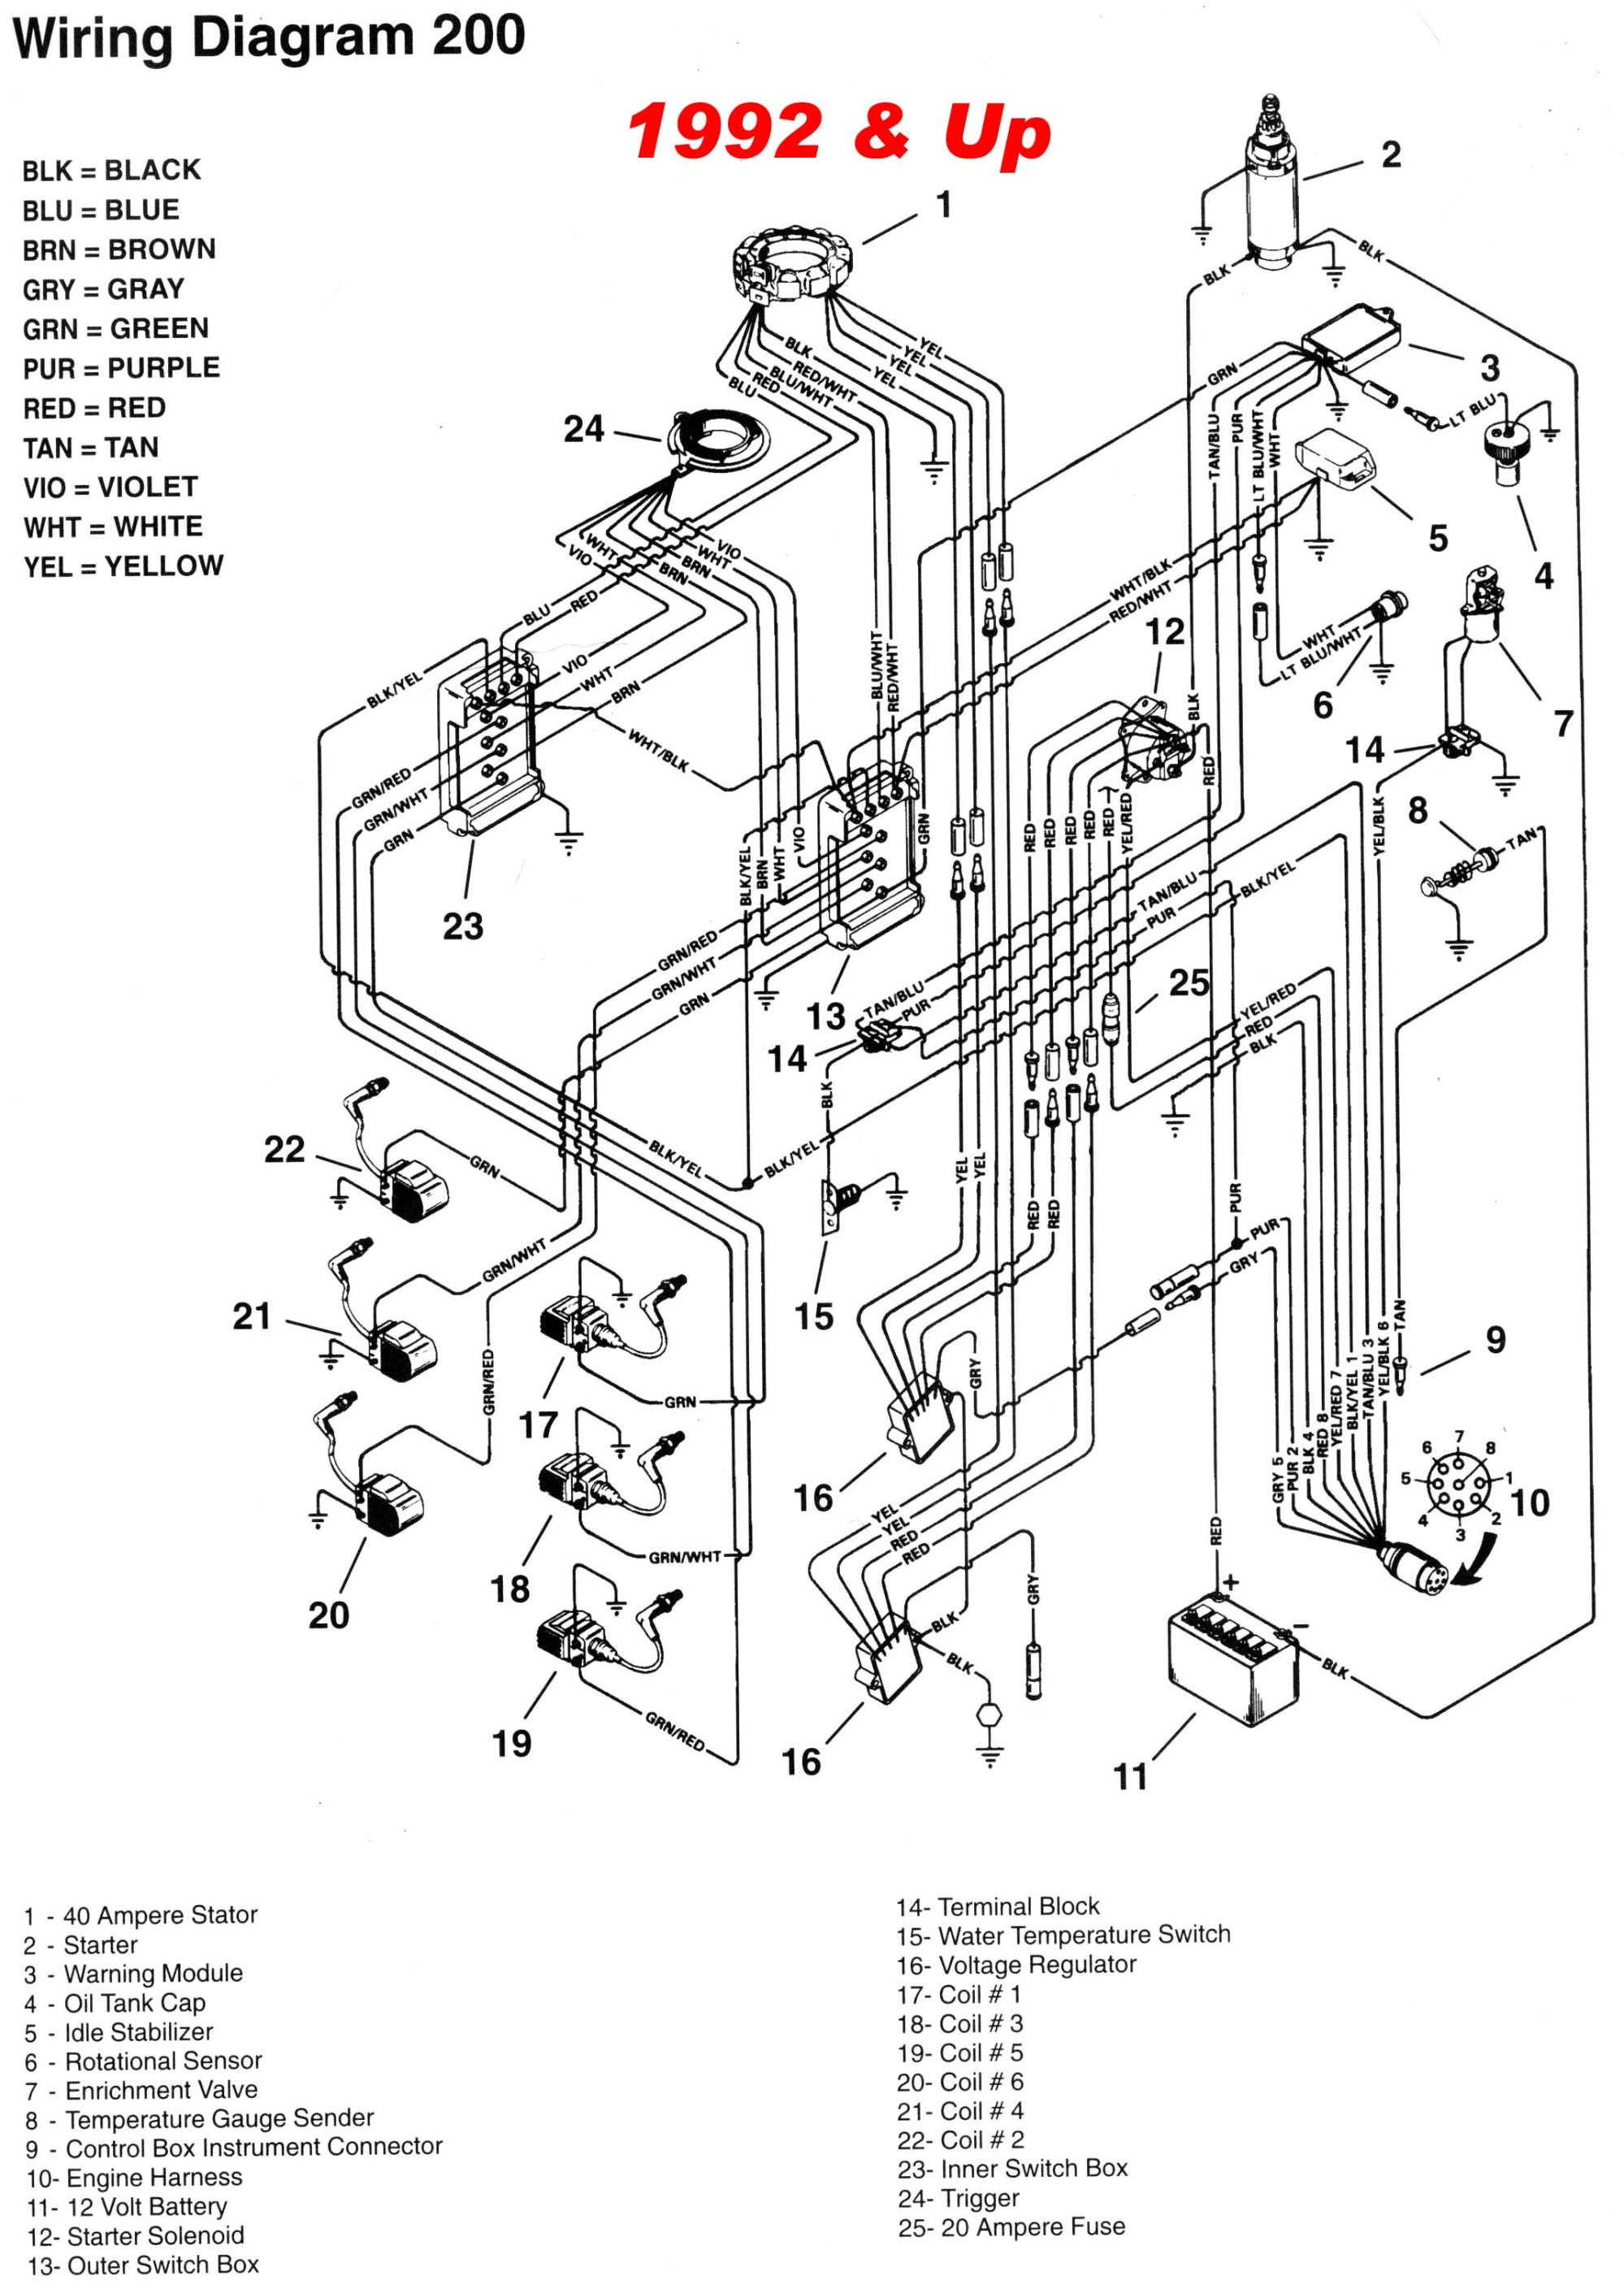 hight resolution of mercury 350 engine diagram wiring diagram portal 3 7 mercruiser engine diagram 8 2 mercruiser engine diagram